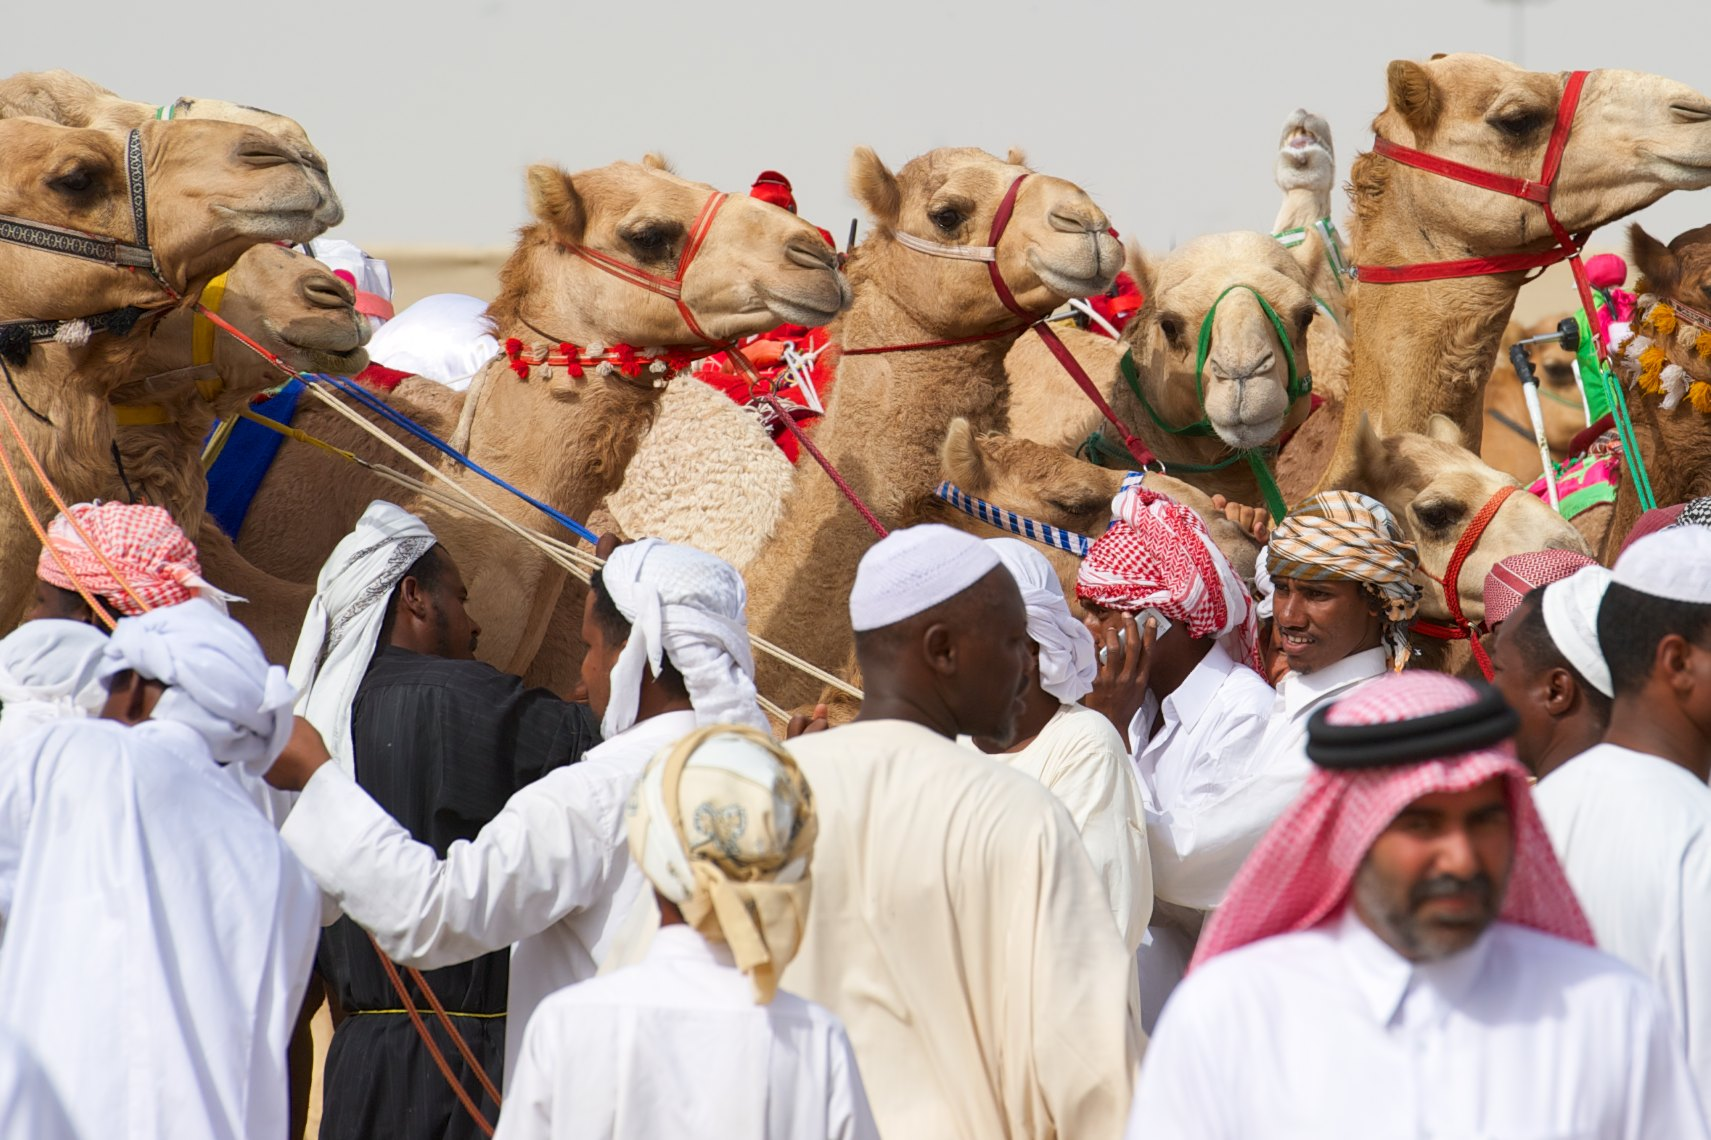 Qatar Al Shahaniya camel race preparing for  the start